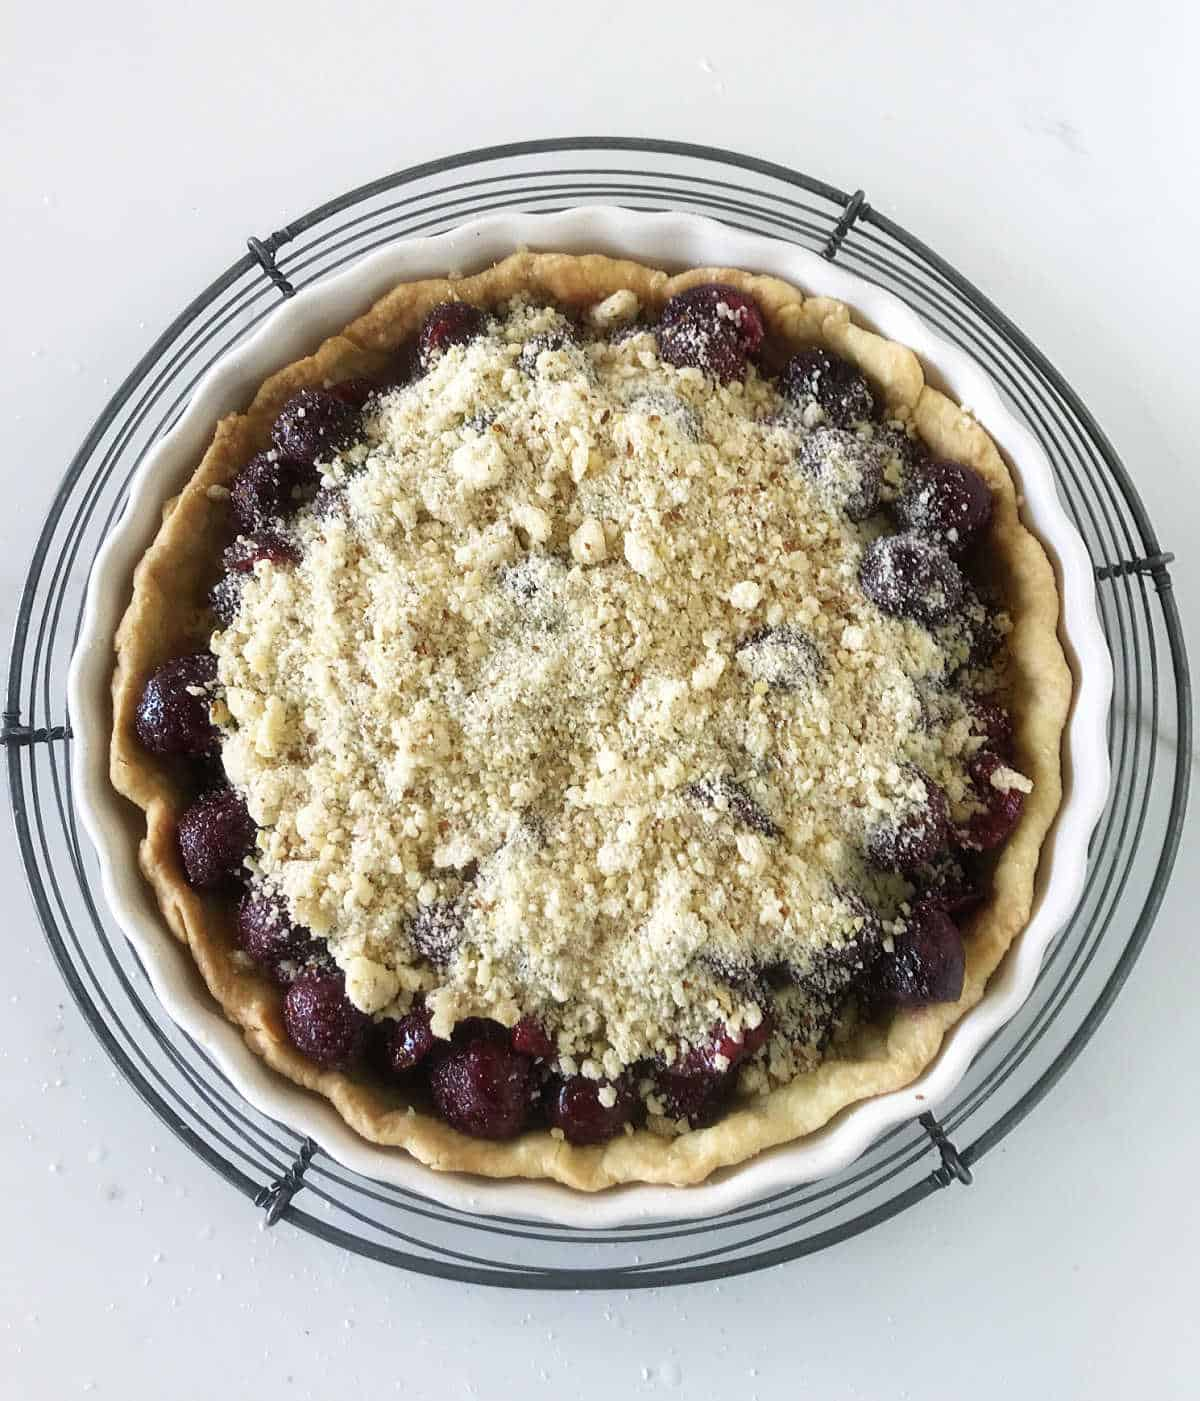 Over view of unbaked cherry crumb pie on wire rack on white surface